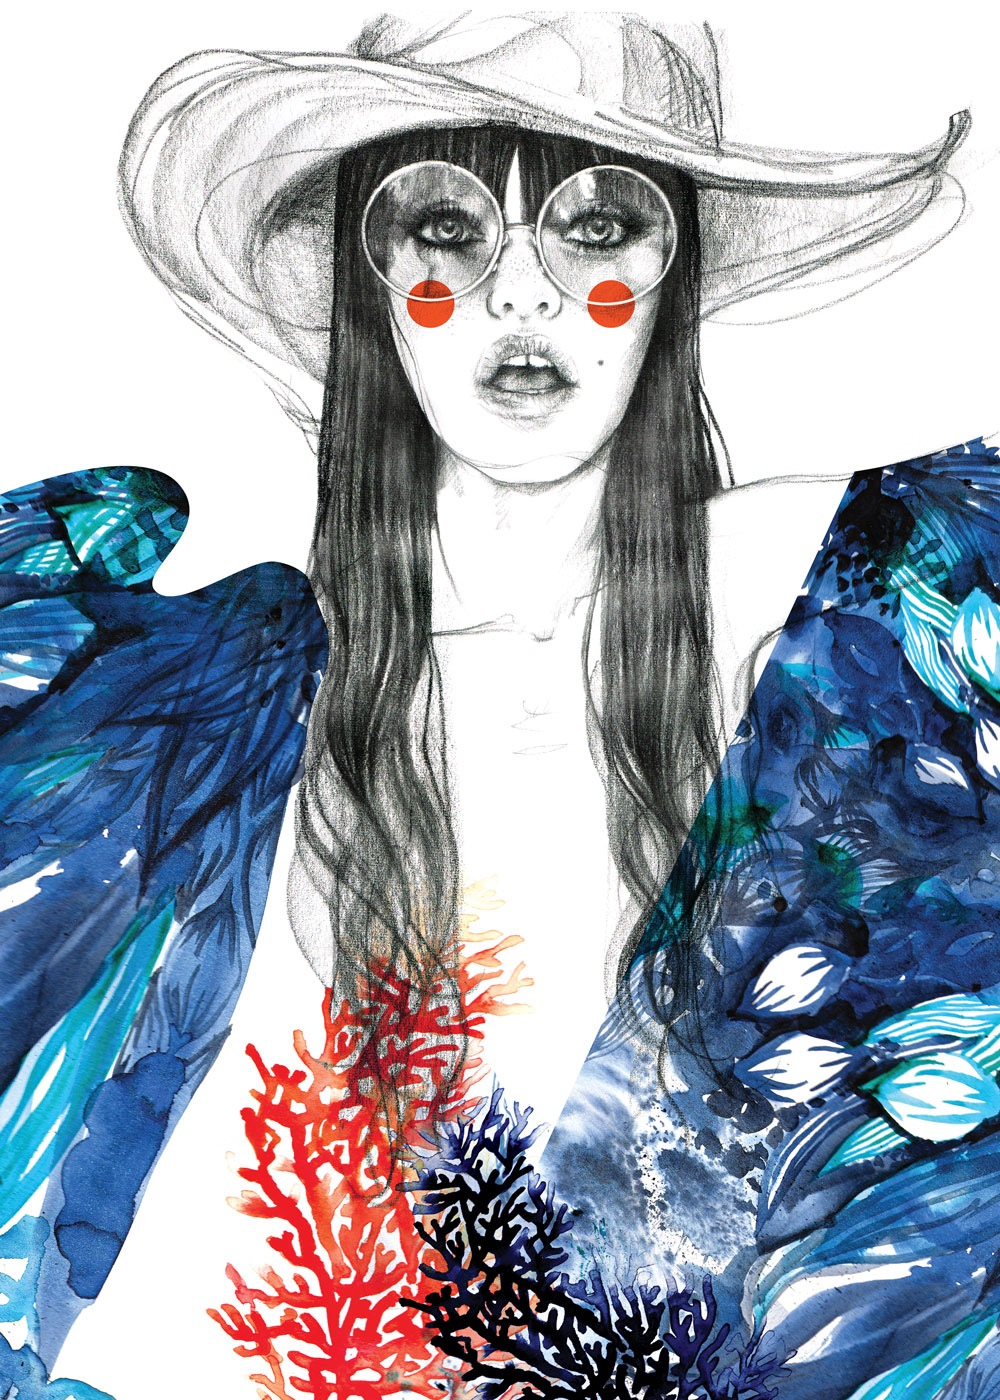 illustrator, illustrators, illustration, illustrations, woman, women, hat, hats, glasses, coral, robe, blush, fashion, water, ocean